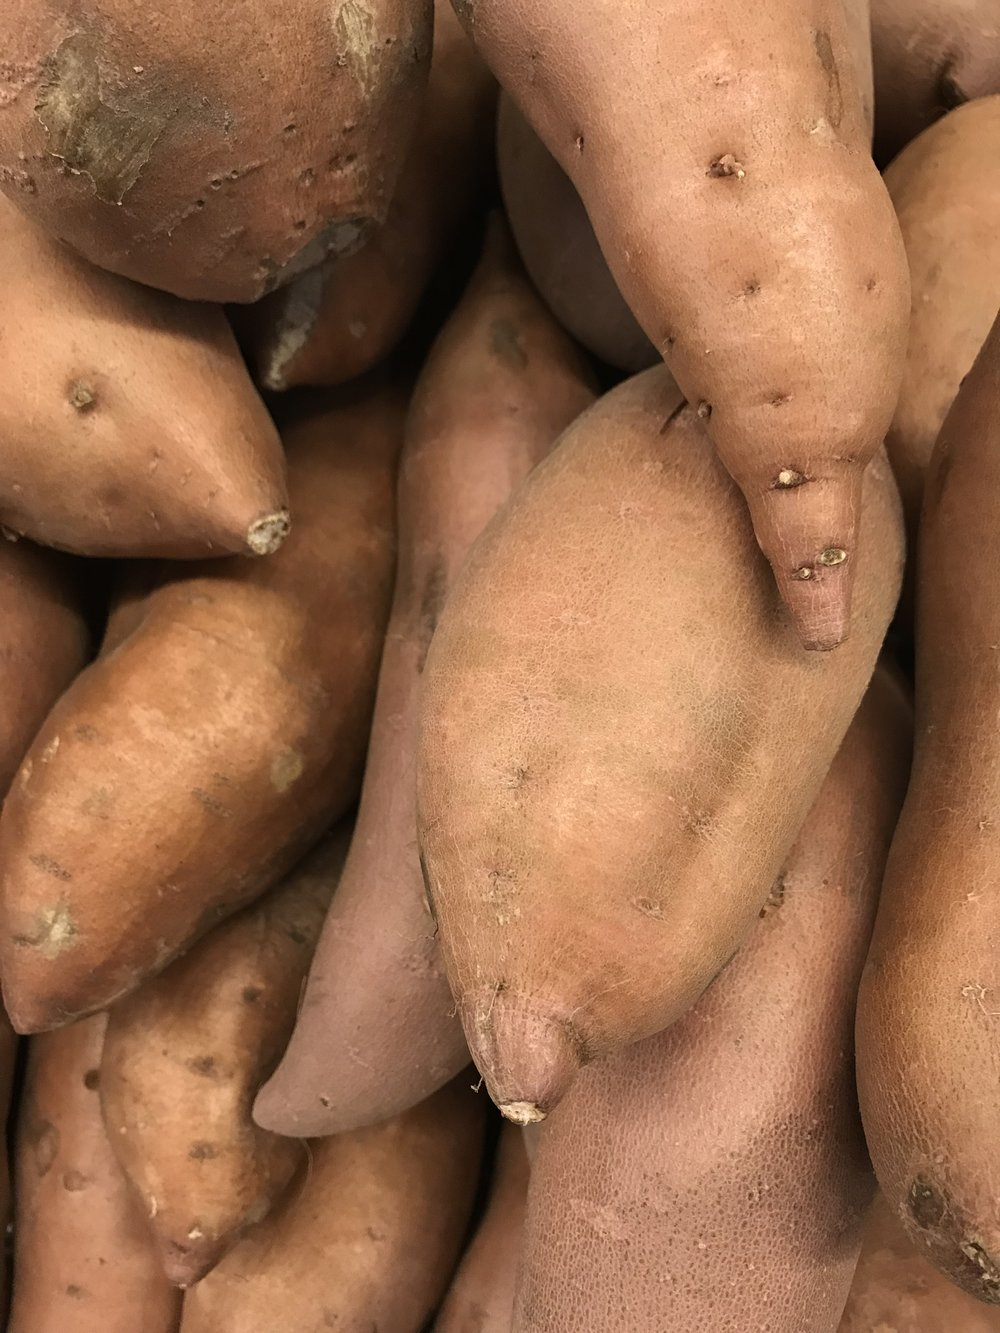 Orange sweet potato, often referred to as yams in supermarkets.